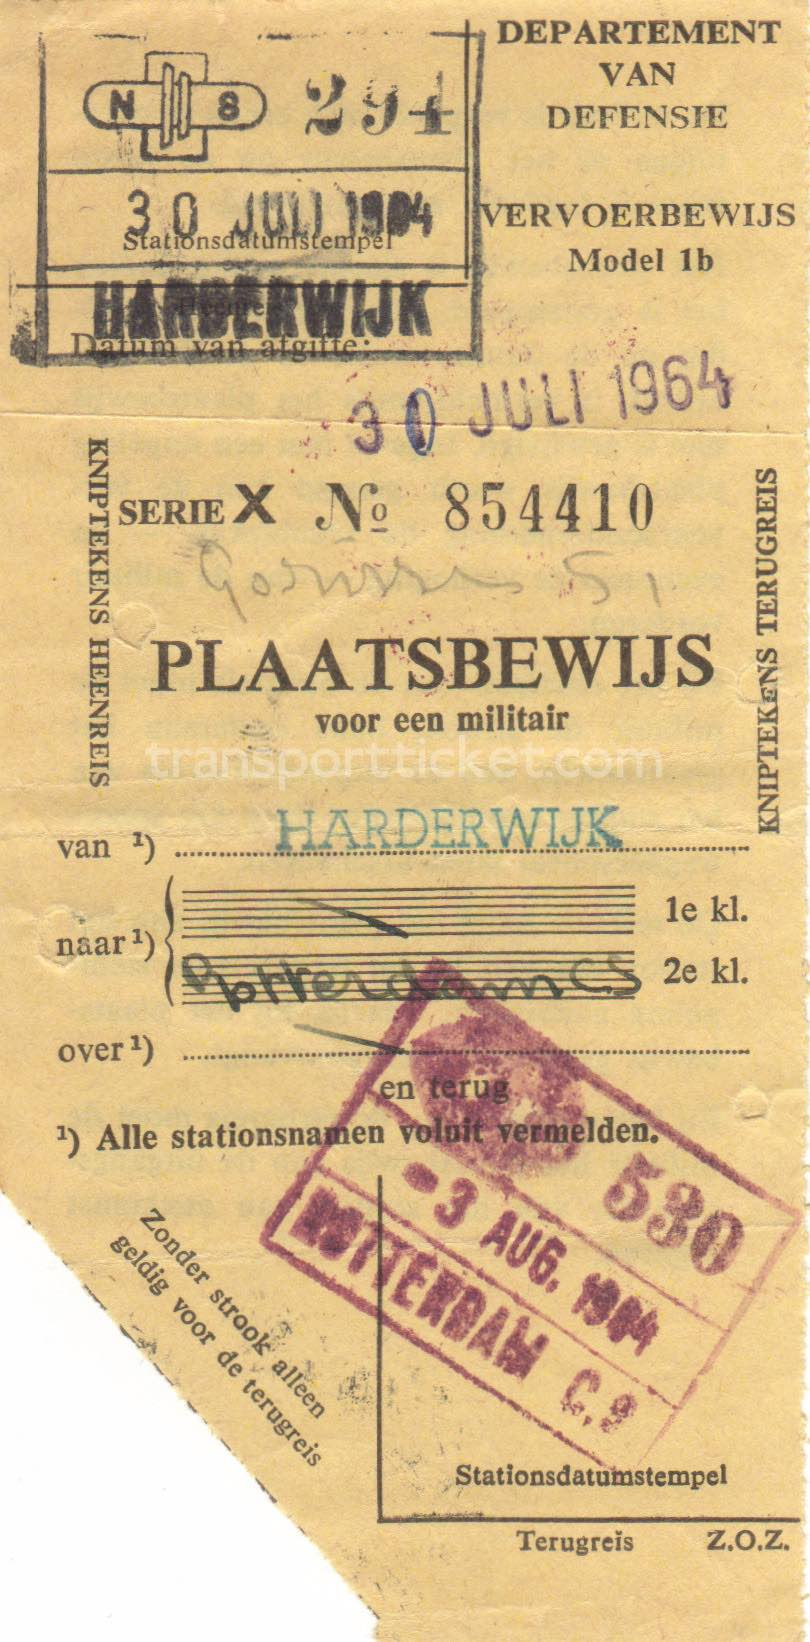 transport ticket issued by Dutch Department of Defense (1964)